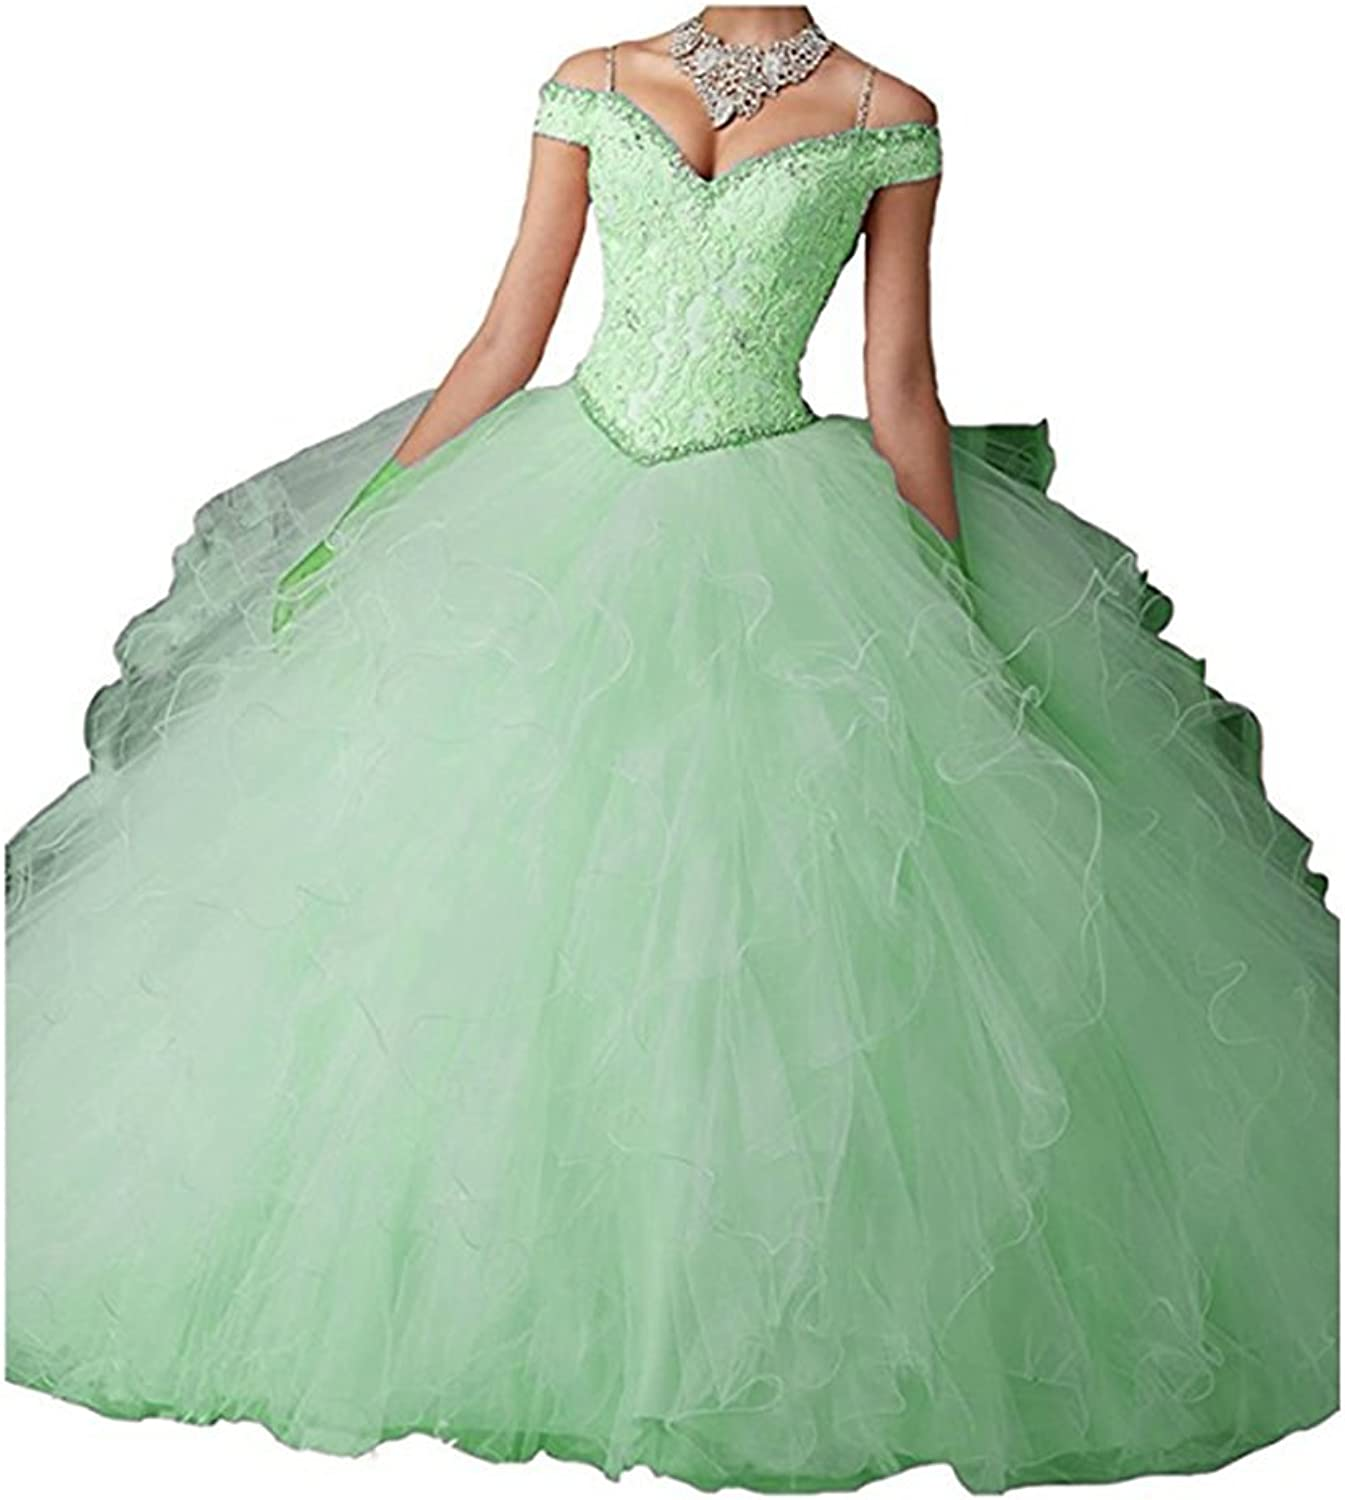 W.W Handmade Appliqued Beaded Prom Quinceanera Dresses Formal Long Party Ball Gown